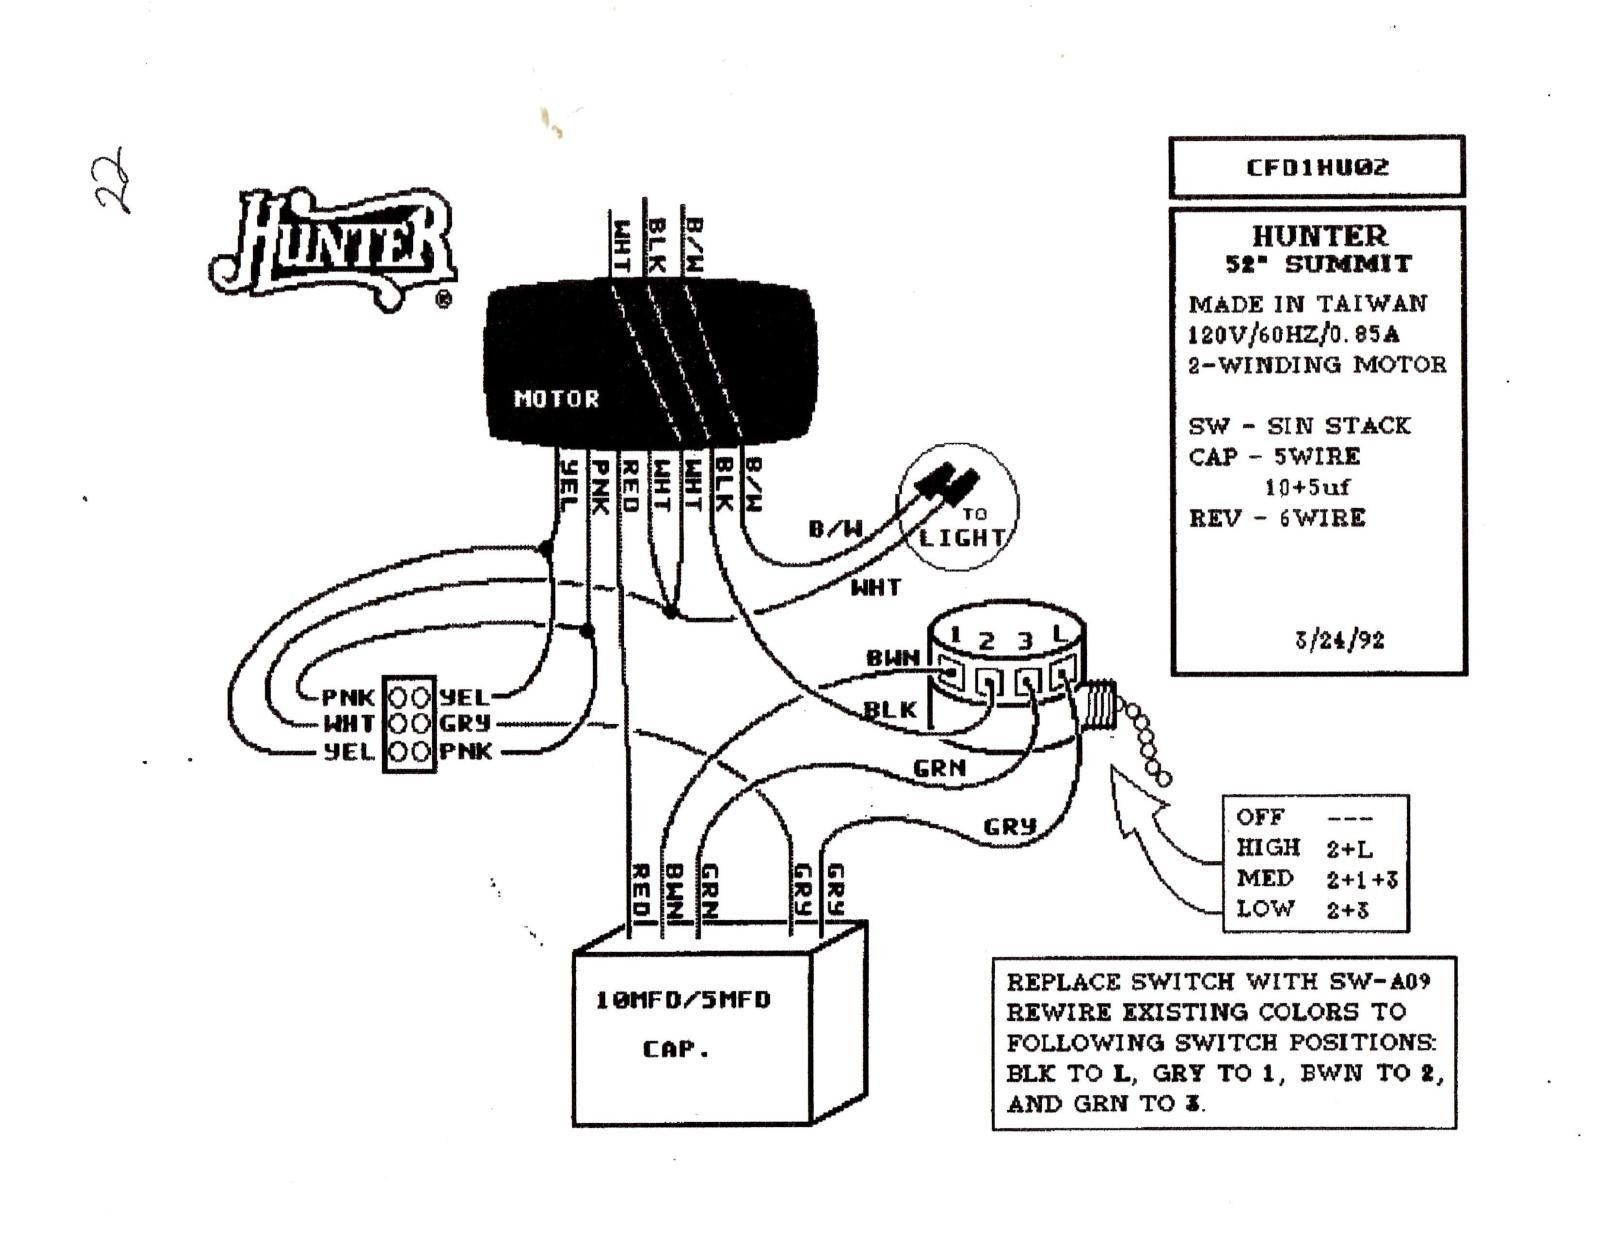 hunter 3 speed fan switch wiring diagram Collection-Wiring Diagram for Ceiling Fan Speed Switch New Wiring Diagram for Ceiling Fan Switch New Hunter 13-k